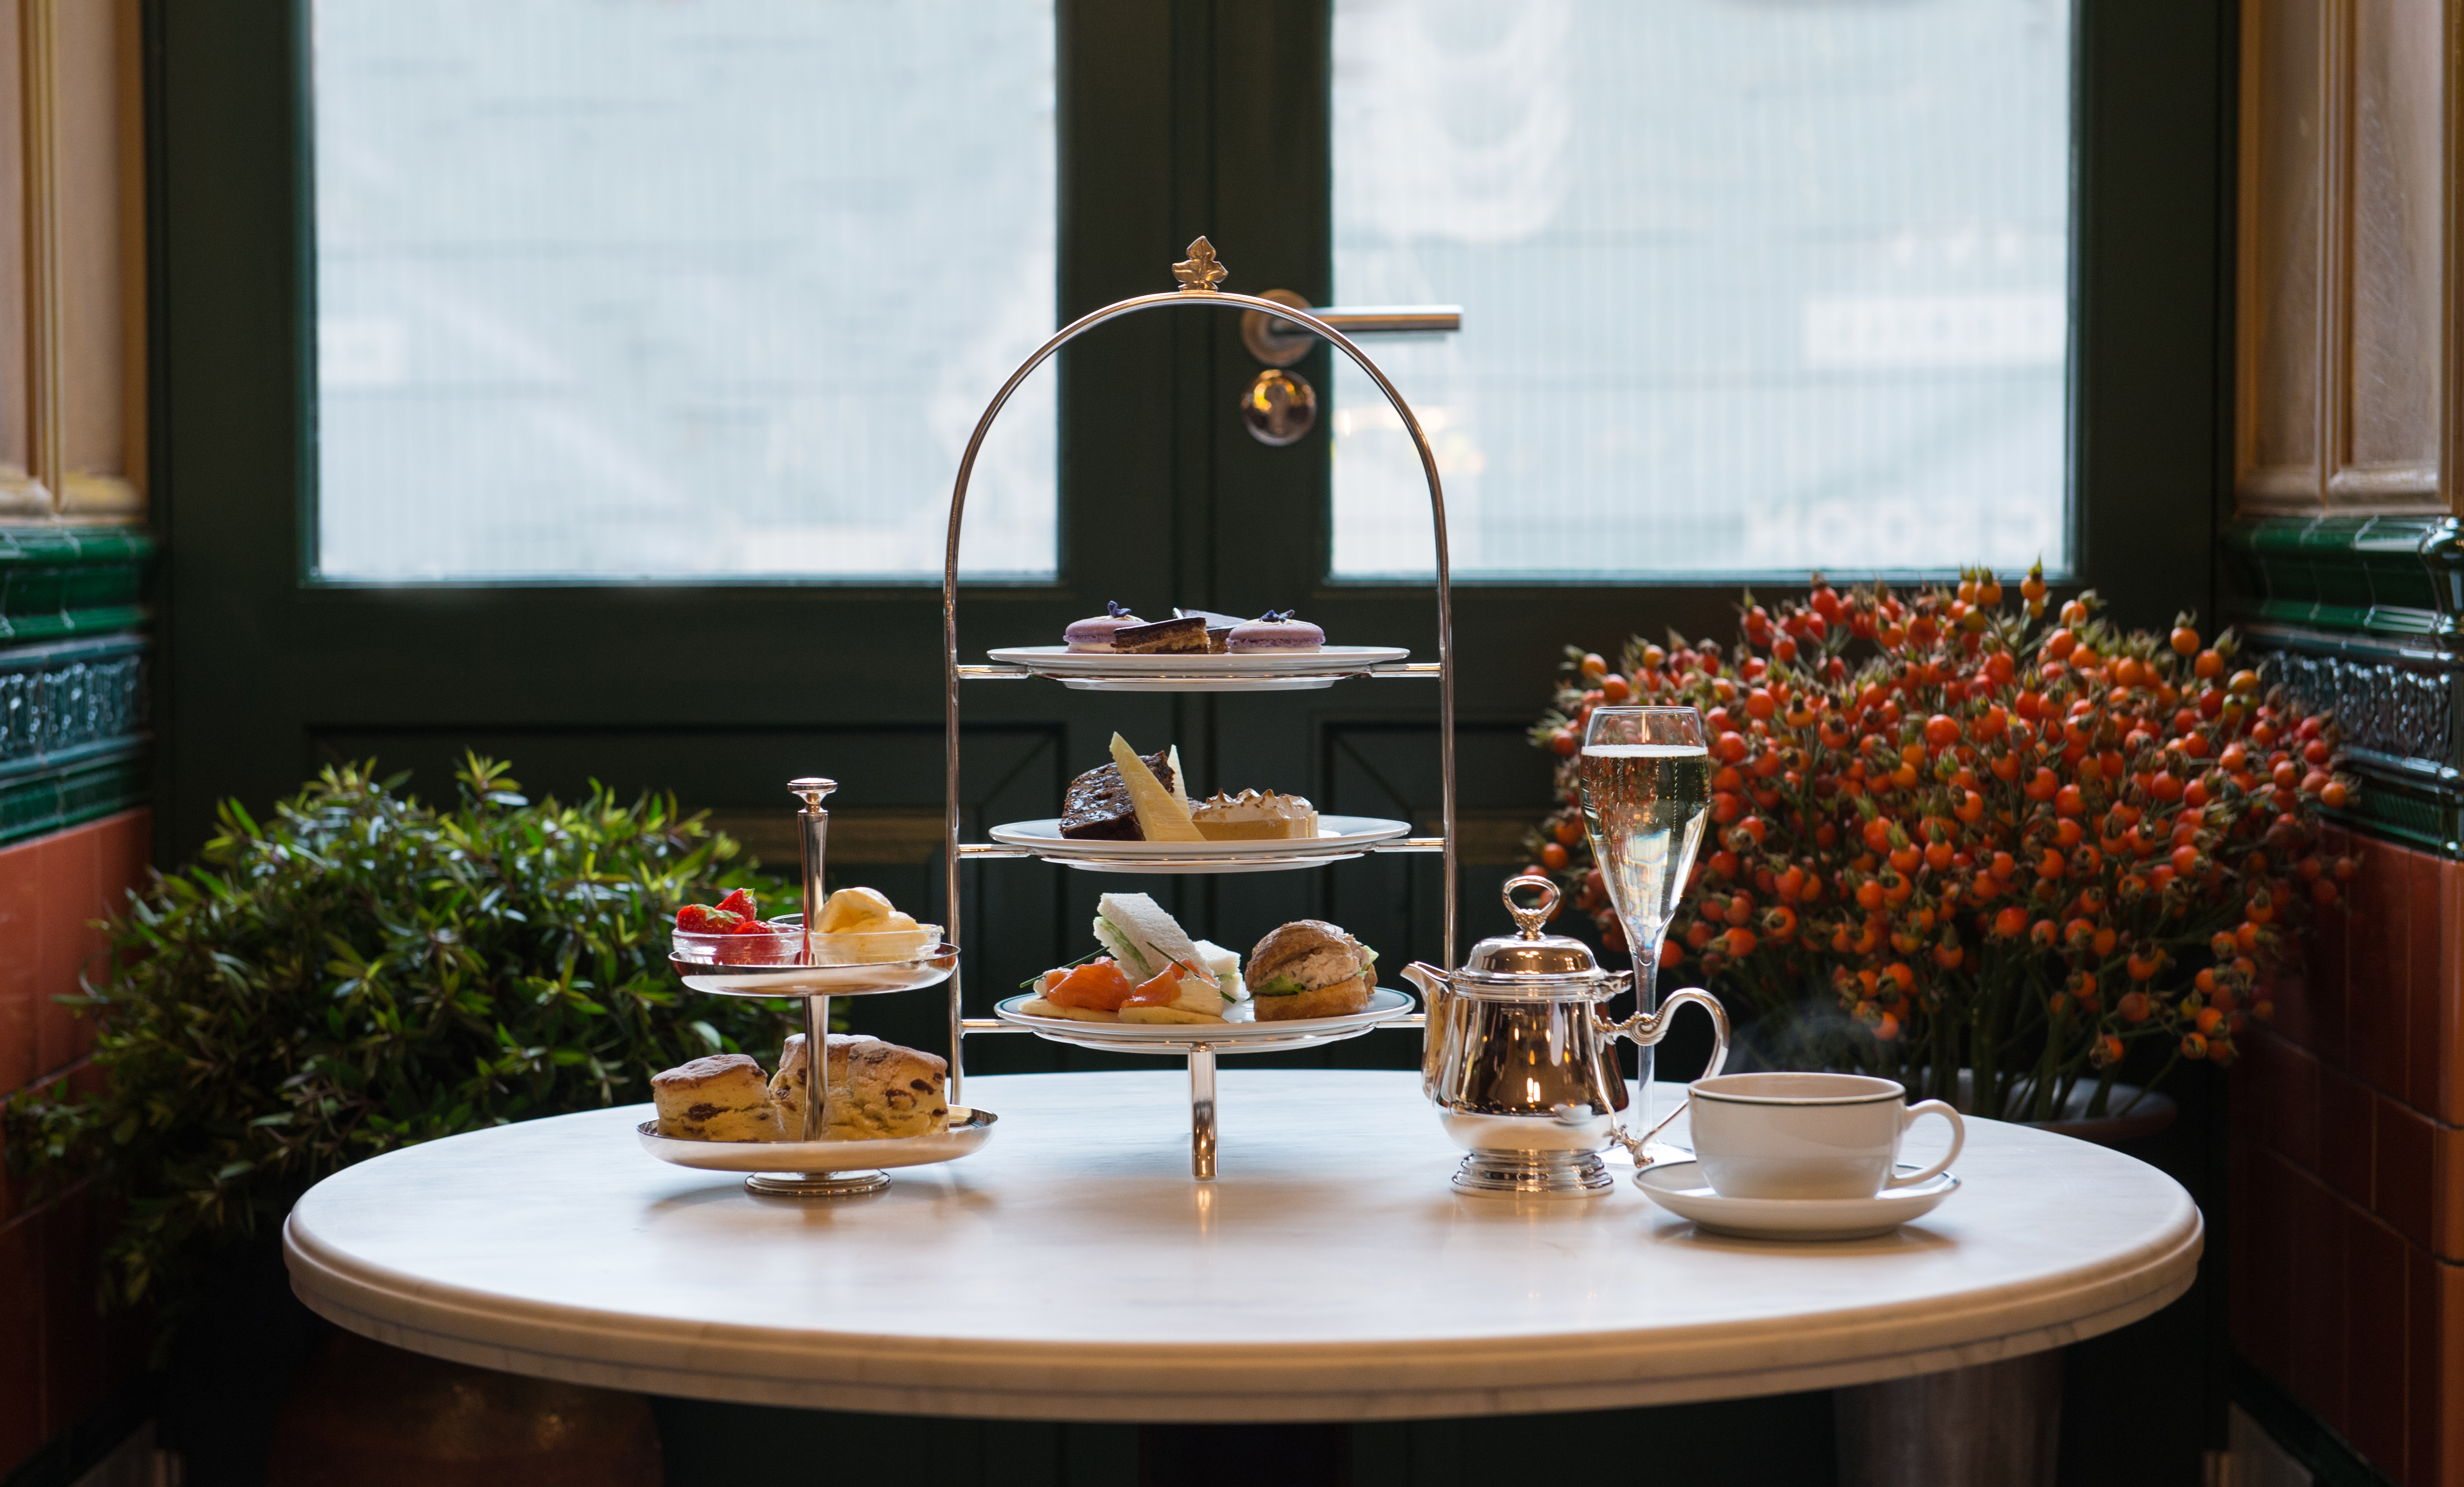 Afternoon tea & a glass of champagne £25 per person